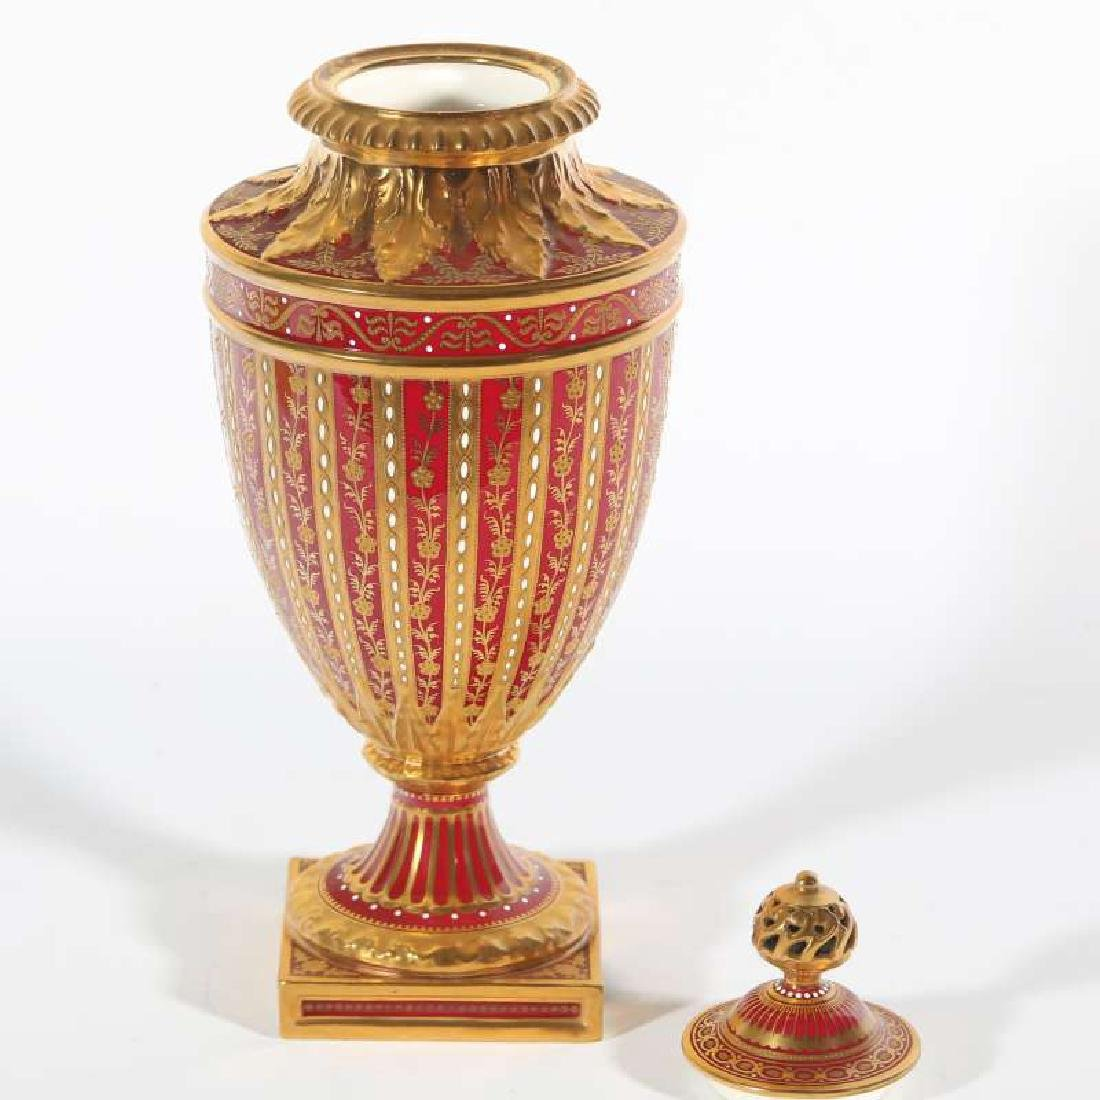 A LATE 19TH C. ROYAL CROWN DERBY COVERED VASE - 4